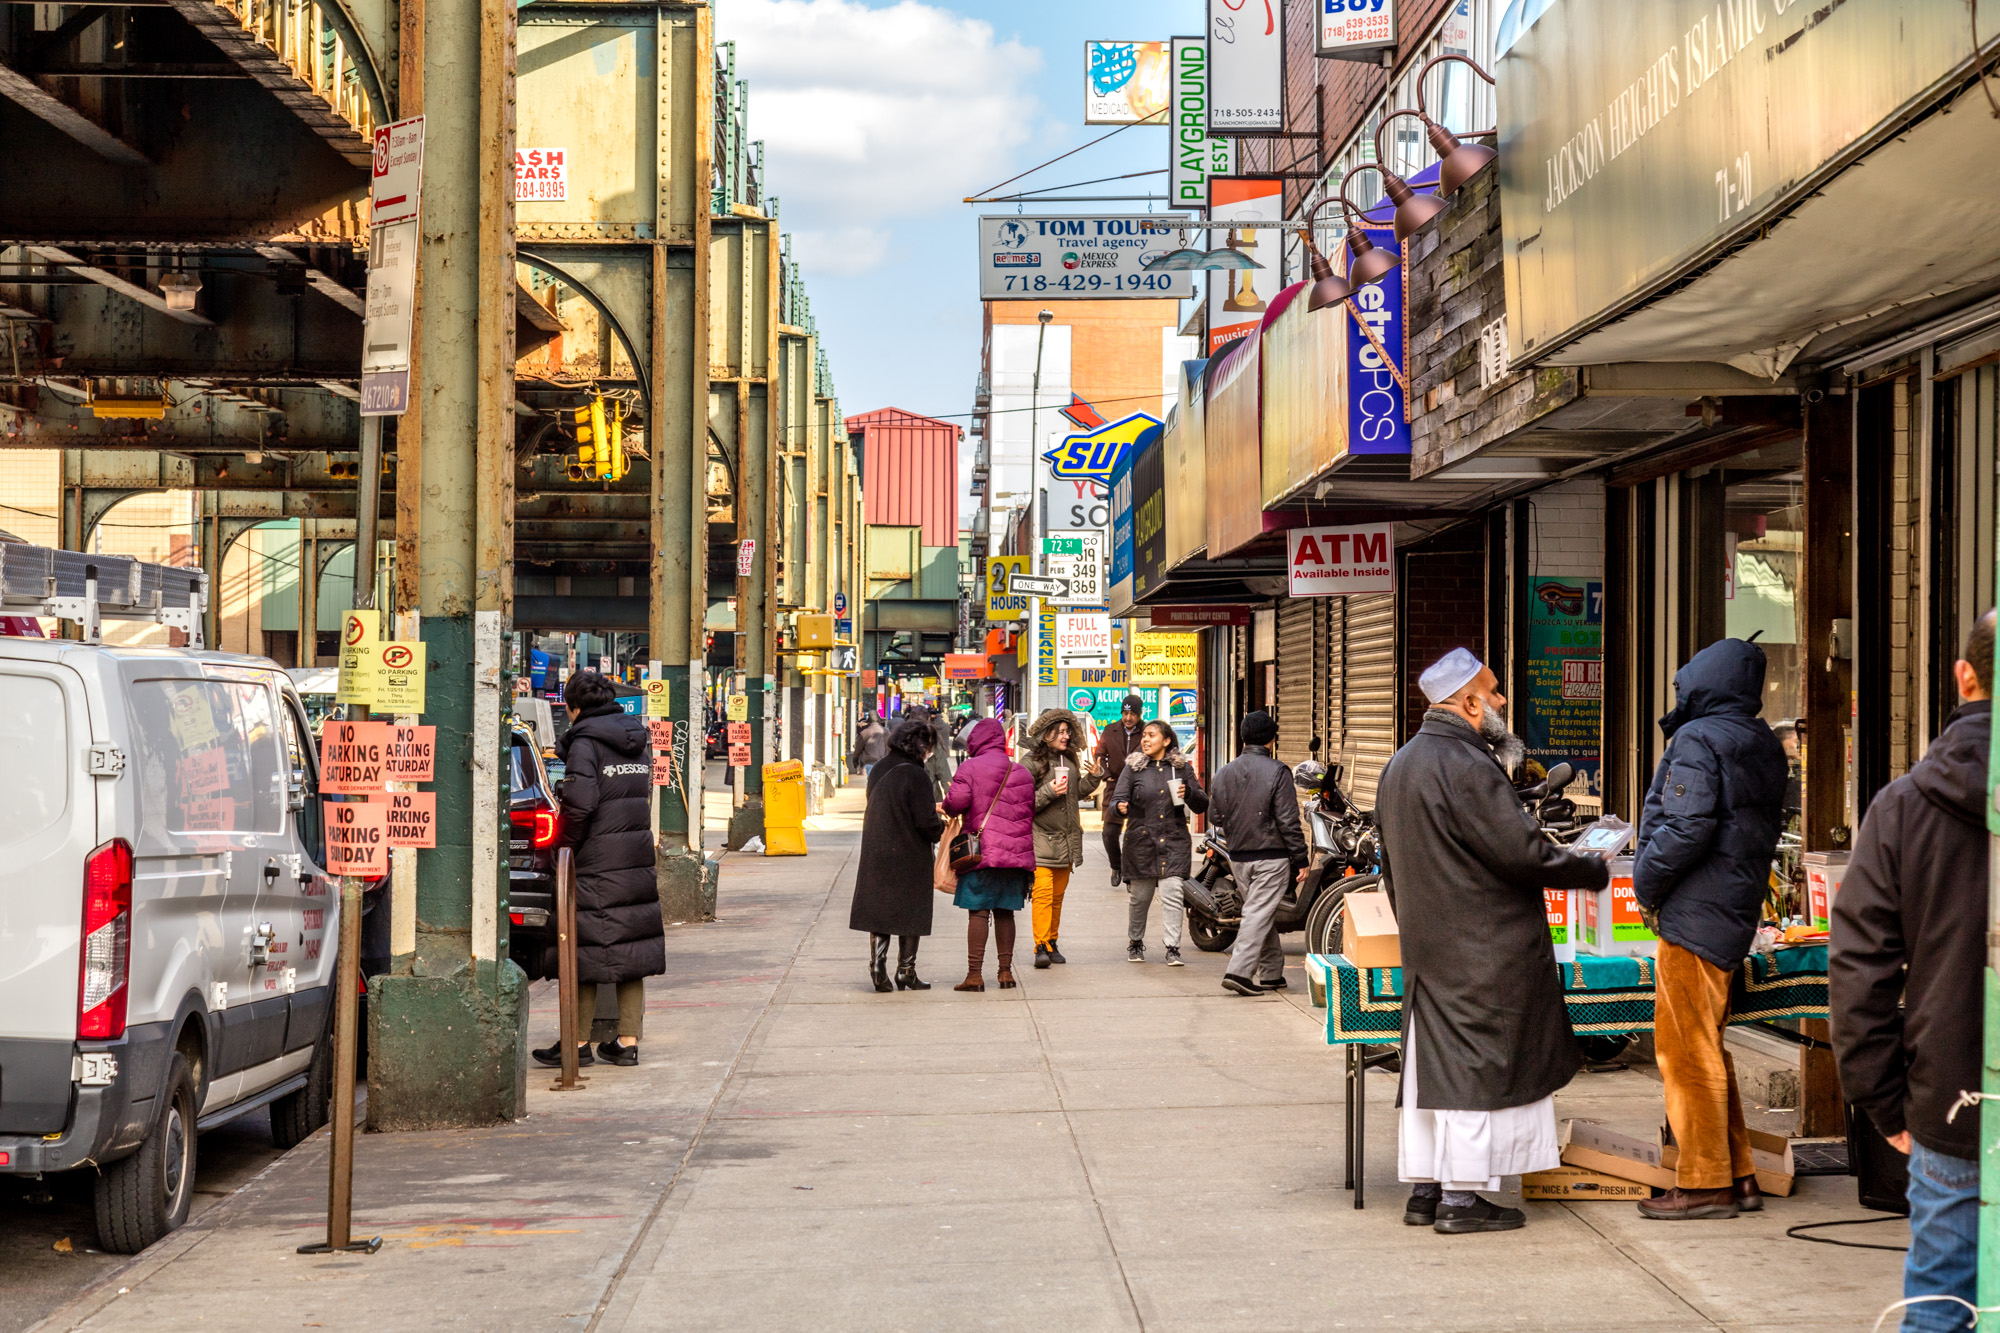 Busy sidewalk in Jackson Heights, Queens - many people on the street, two men talking, women walking on the sidewalk - busy block of shops on the right, and the elevated above ground subway on the left.